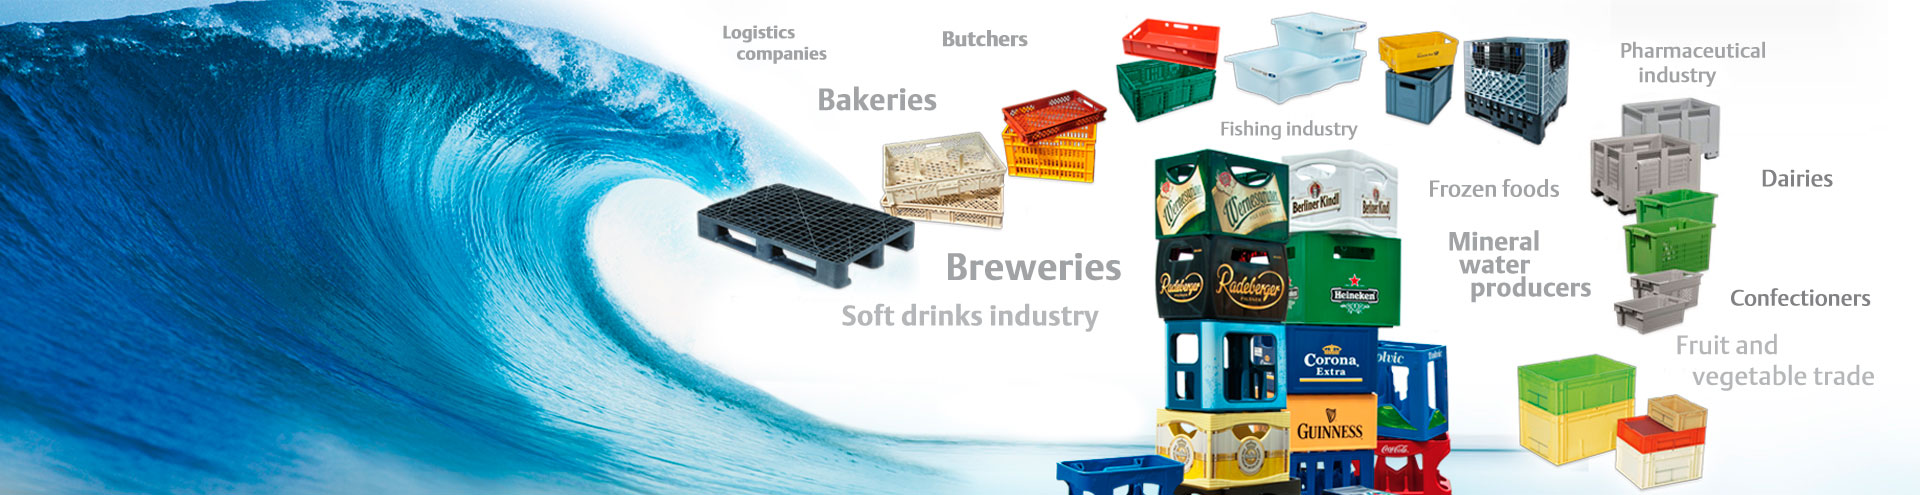 BOHRER crate washers provide cost efficient cleanliness and hygiene for drinks crates, food cases, logistics containers and pallets